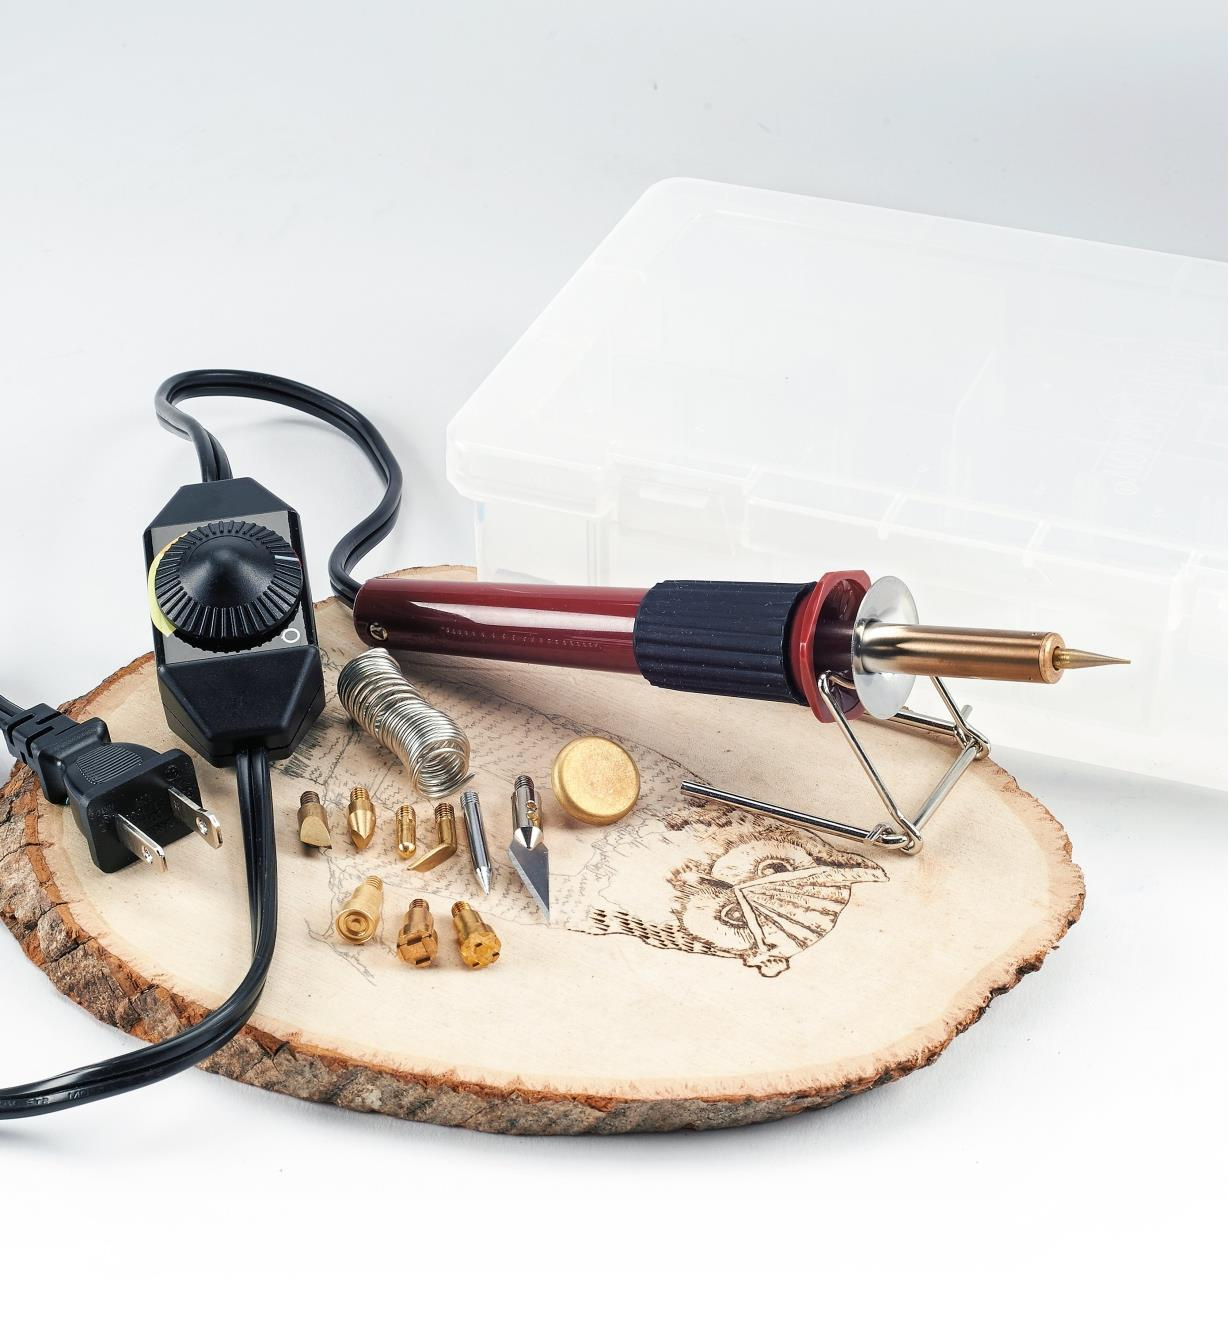 Multi-Function Heat Pen Set sitting on a plaque with an owl image partially burned in